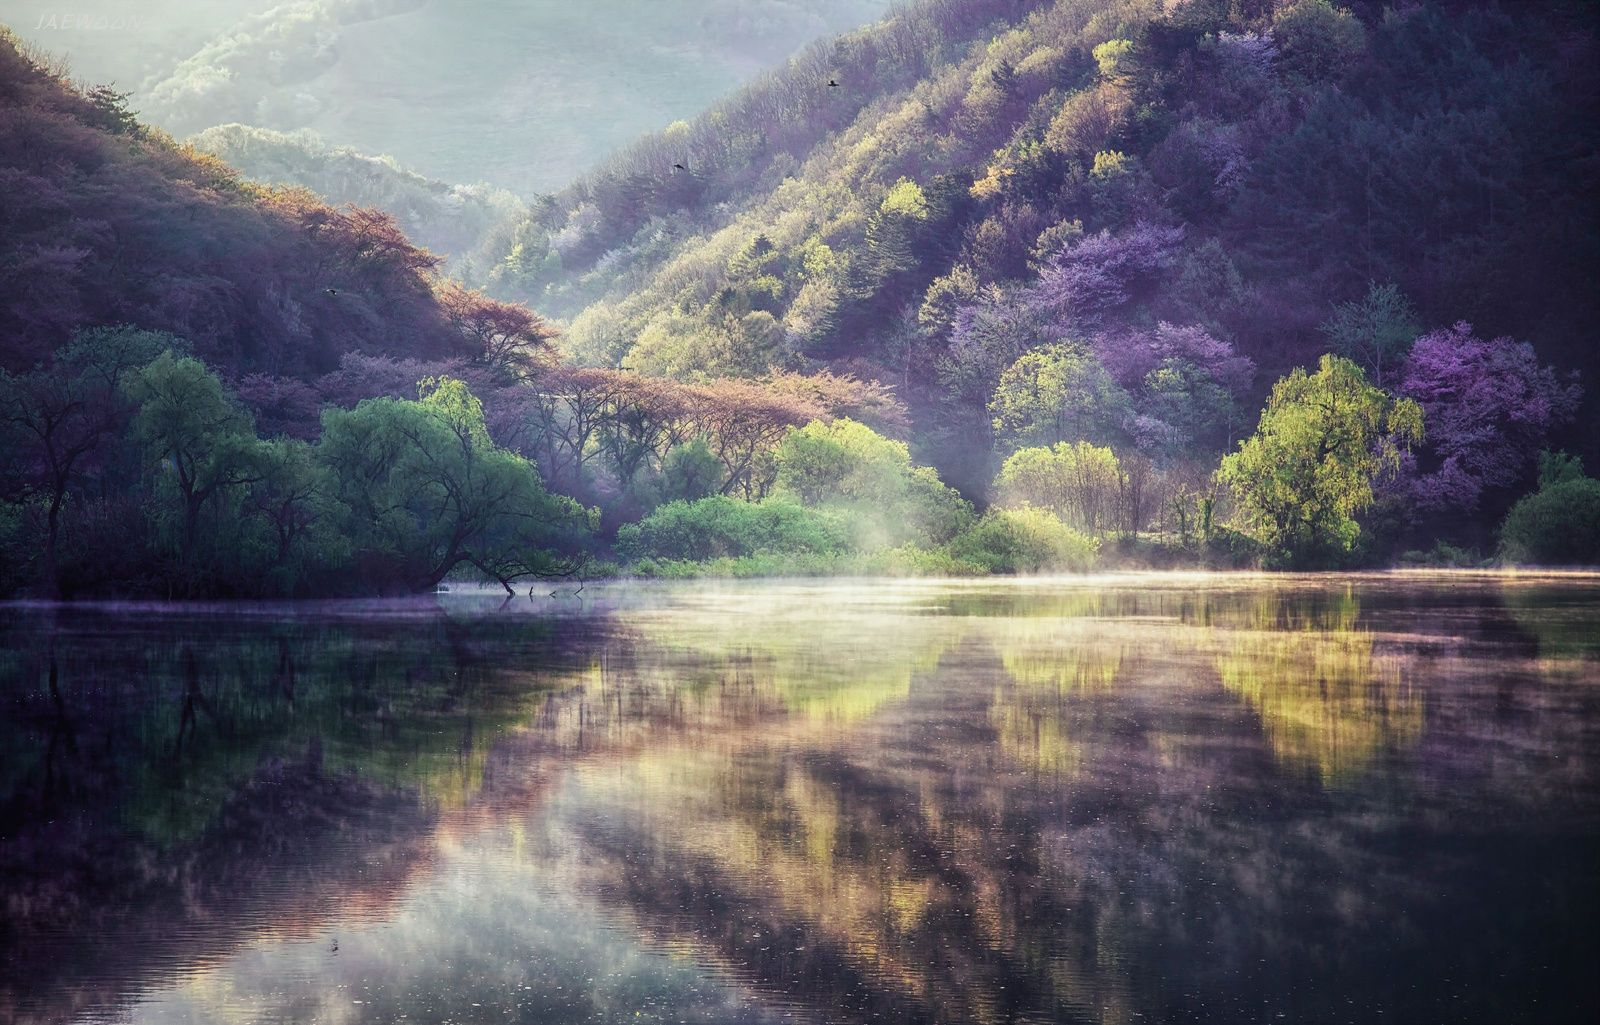 Yongbijŏsuji South Korea I Want To Go To There Pinterest - The beauty of south korea captured in stunning reflective landscape photography